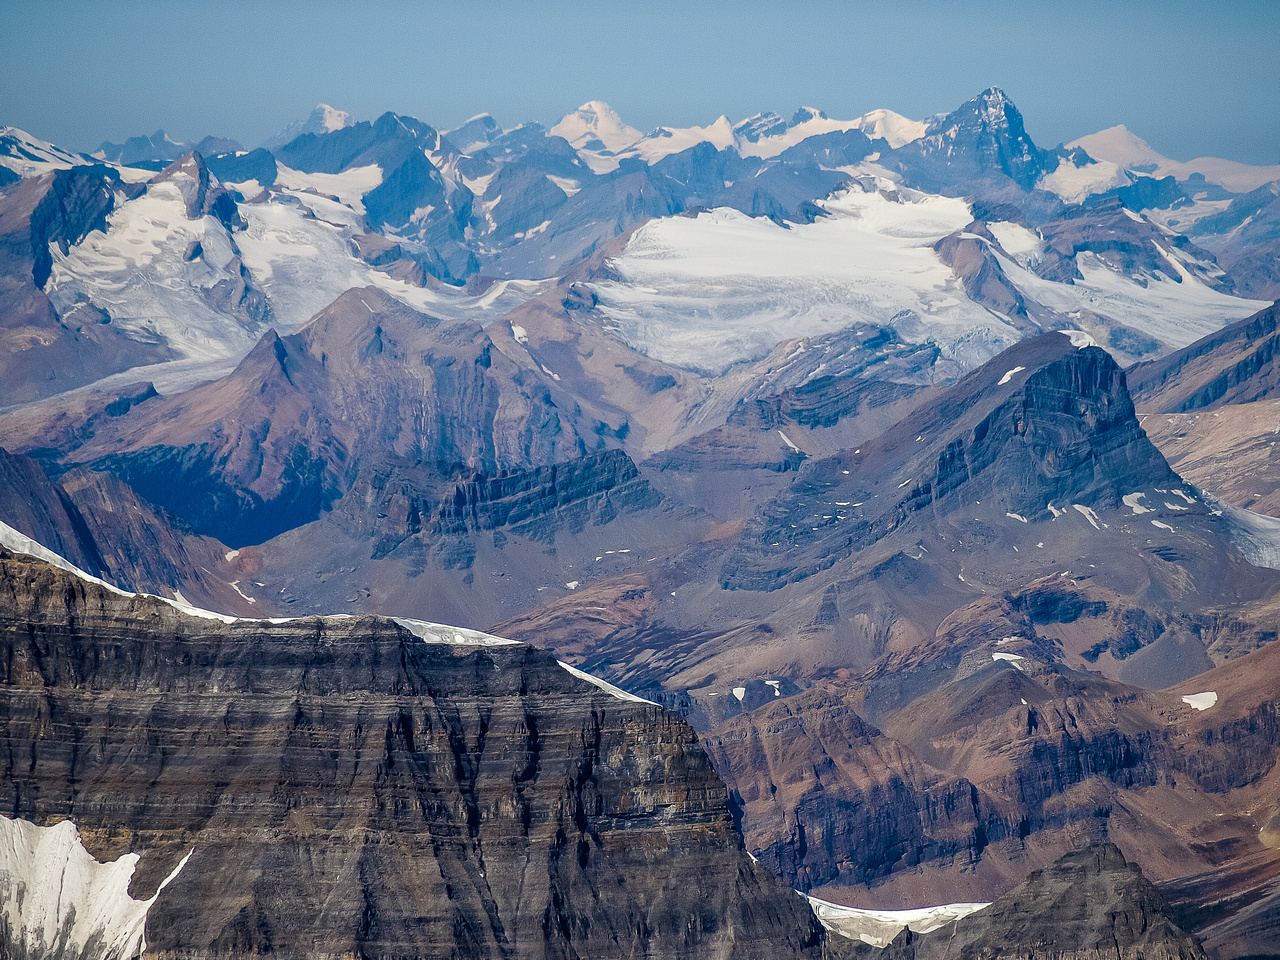 Mount Niles in the foreground with Yoho, Collie, Des Poilus, Bryce, Columbia, The Lyells, Forbes and many more peaks visible.